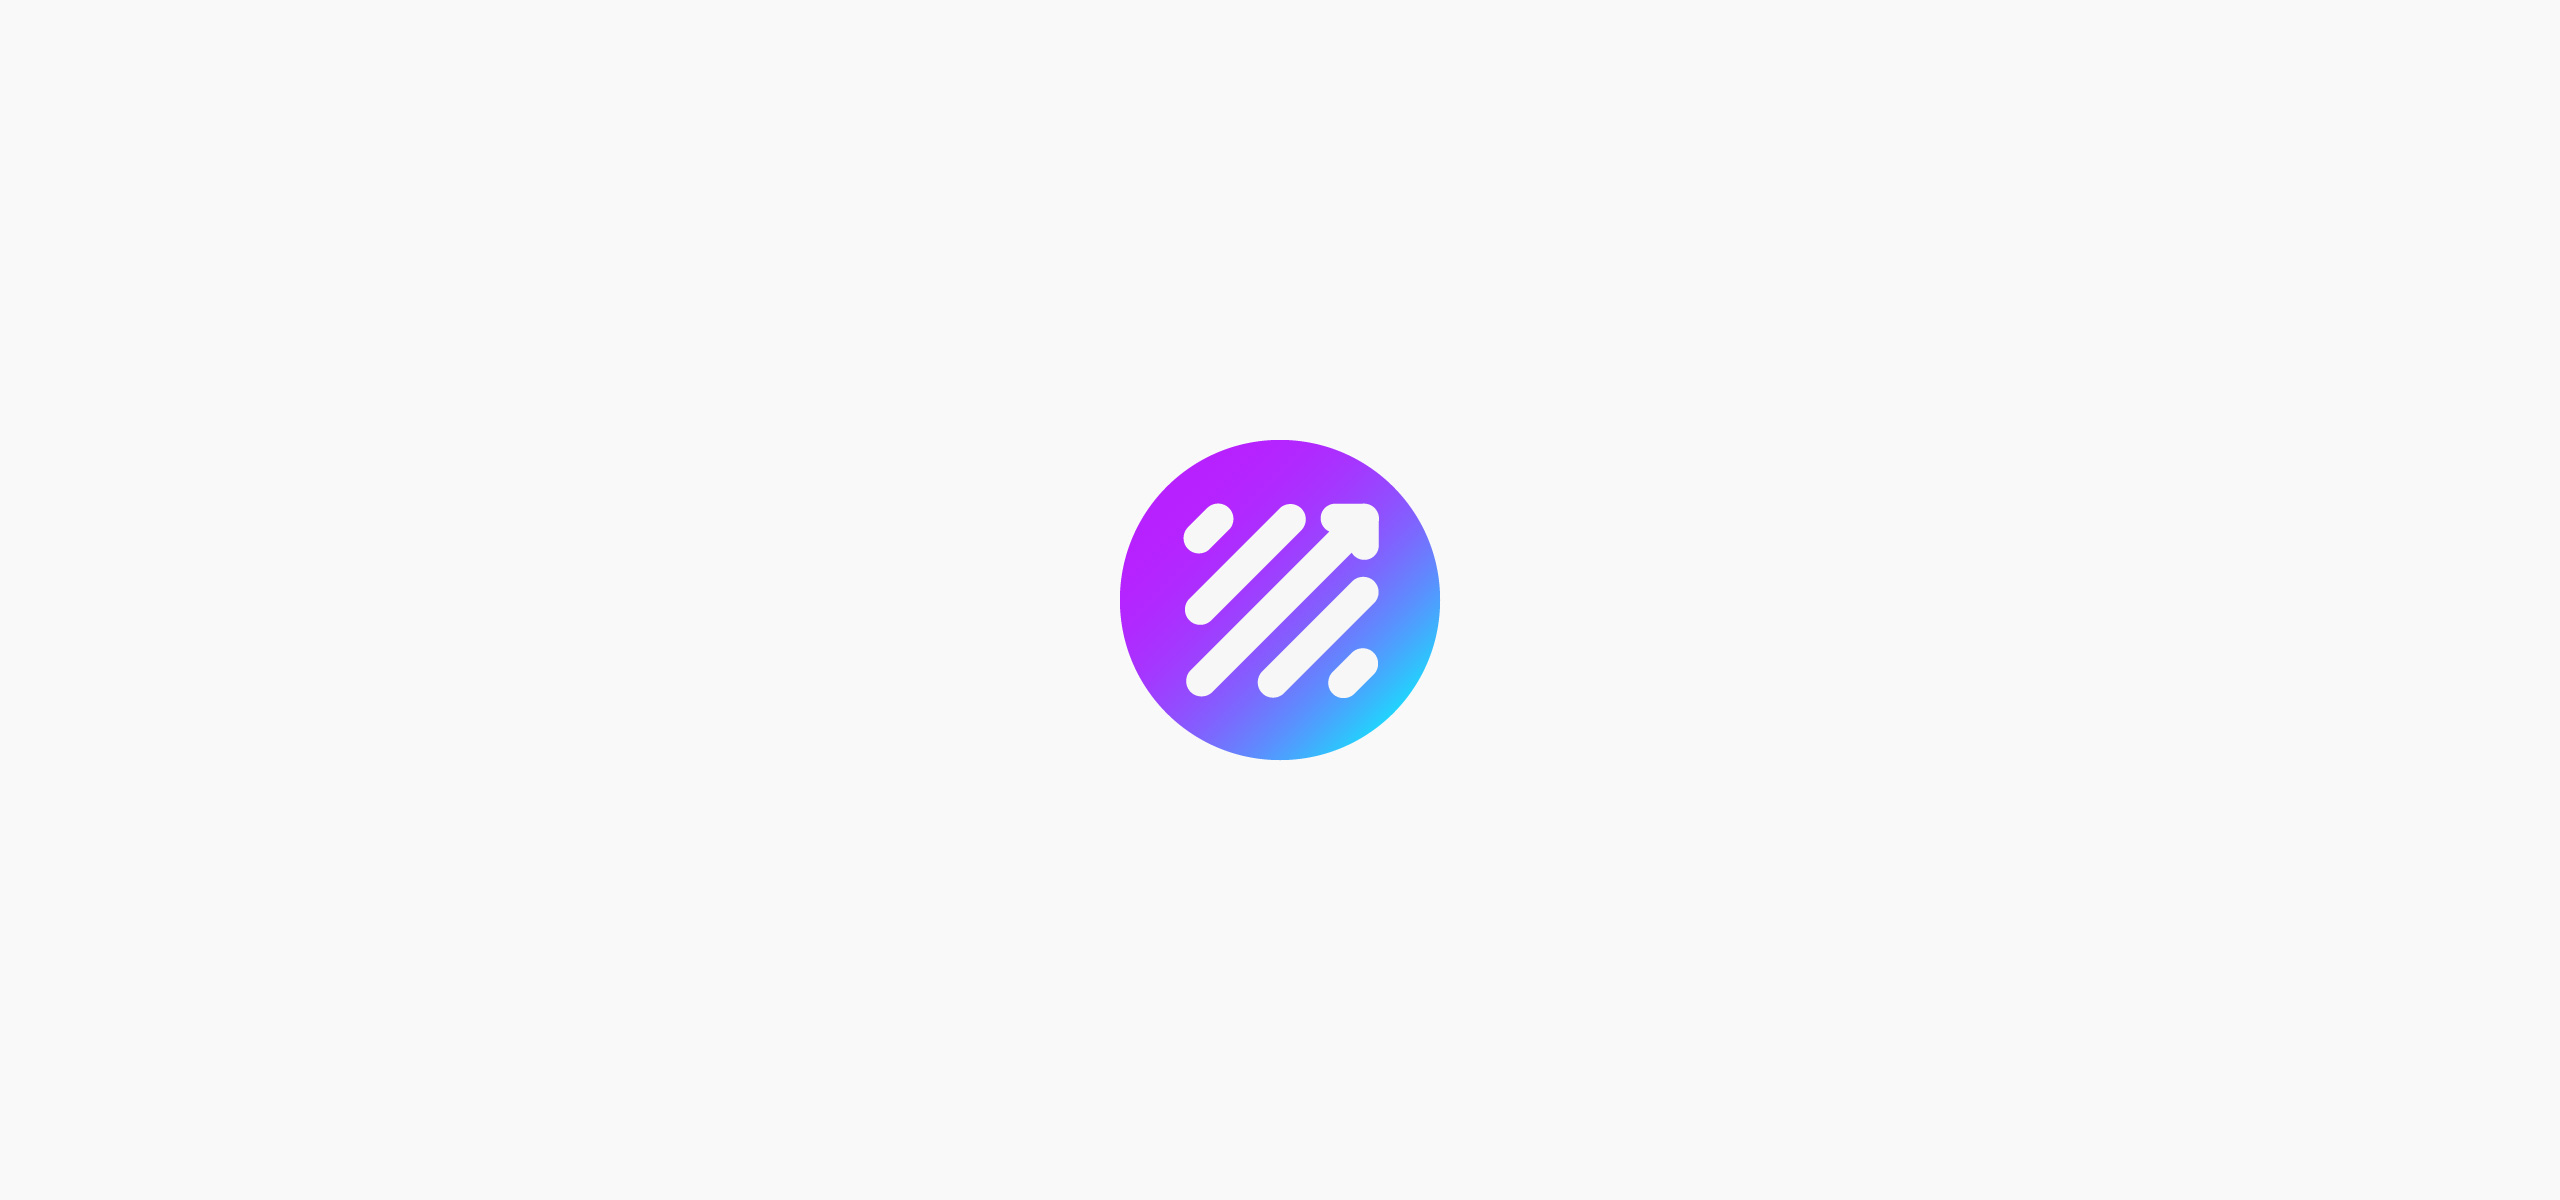 Stock Trading App Icon for iOS and Android